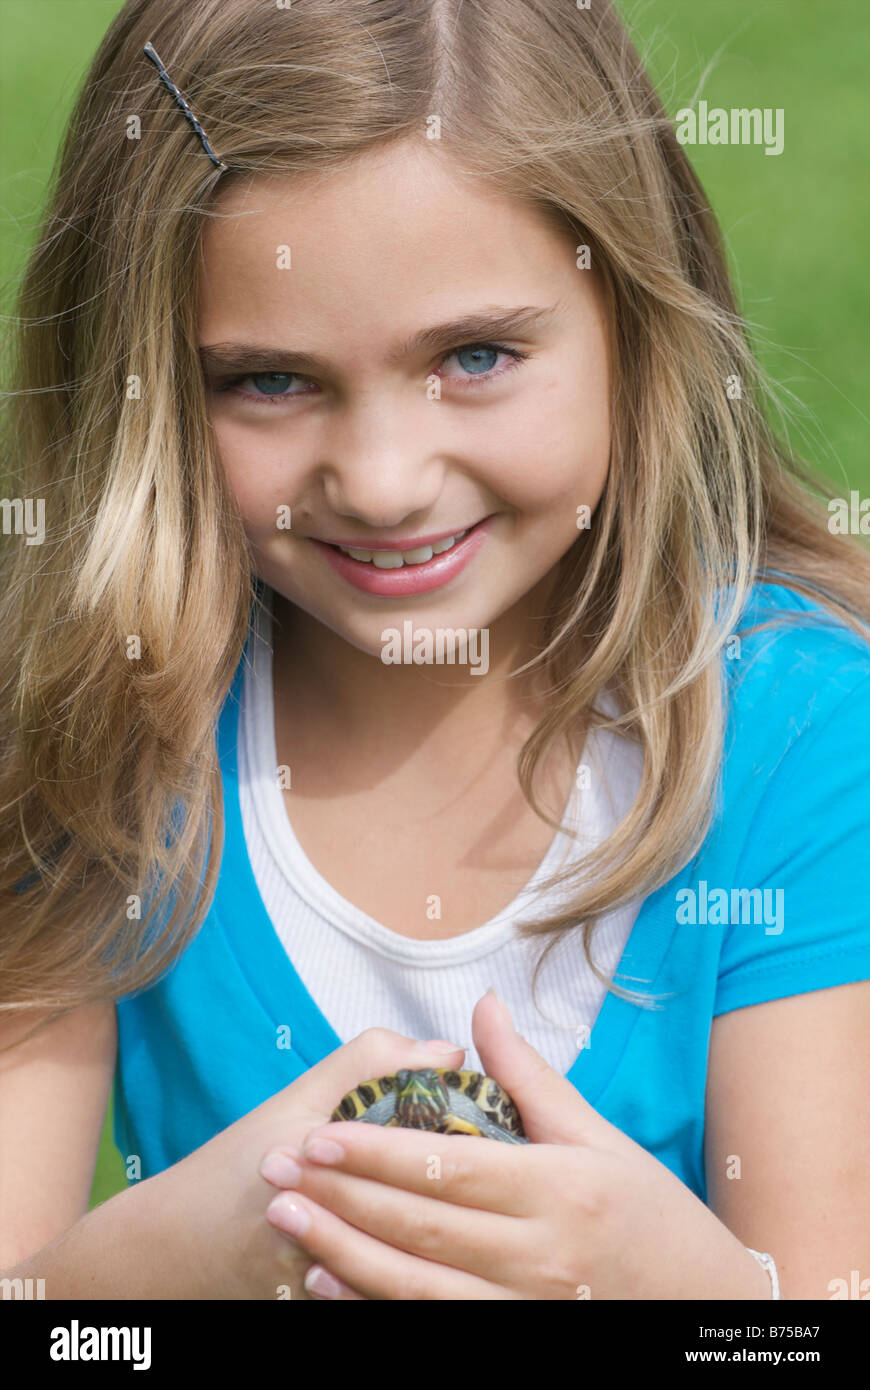 Eight year old girl holding turtle, Winnipeg, Canada - Stock Image